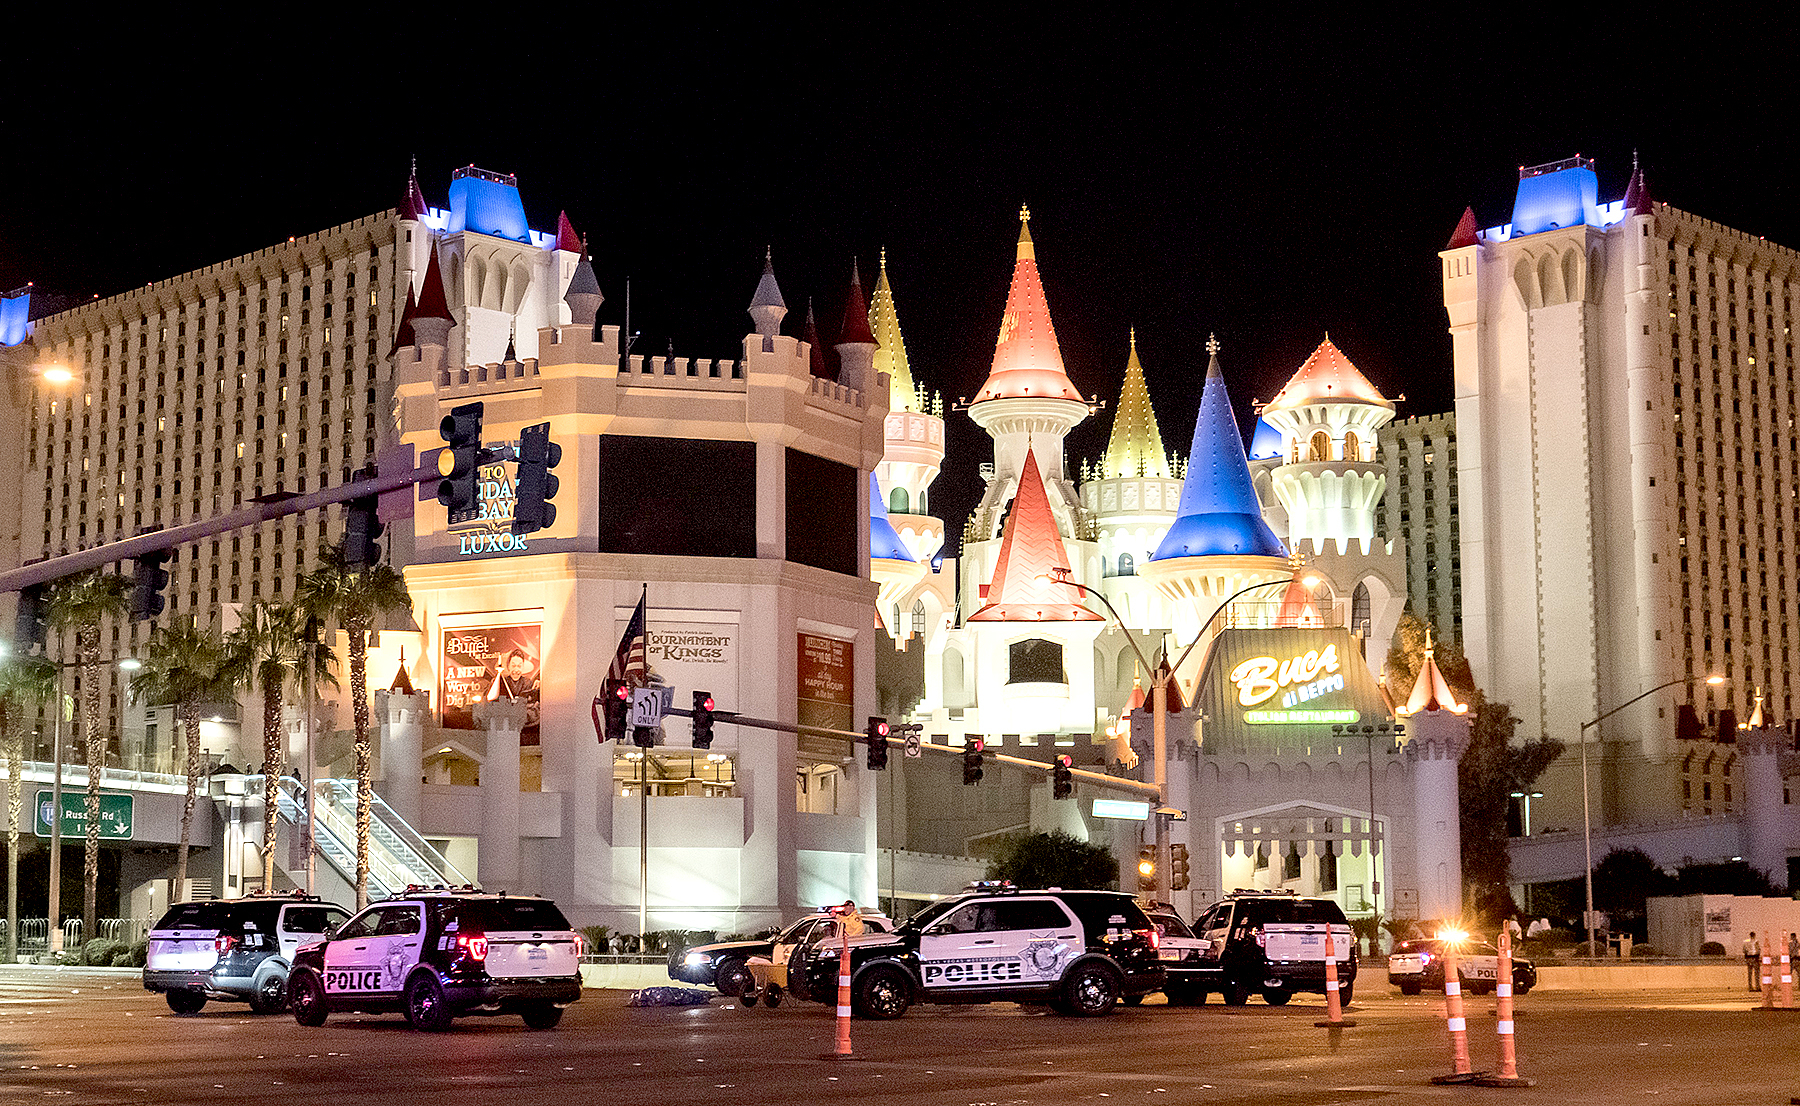 Police block the roads leading to the Mandalay Hotel (background) after a gunman attack in Las Vegas, NV, United States on October 02, 2017.